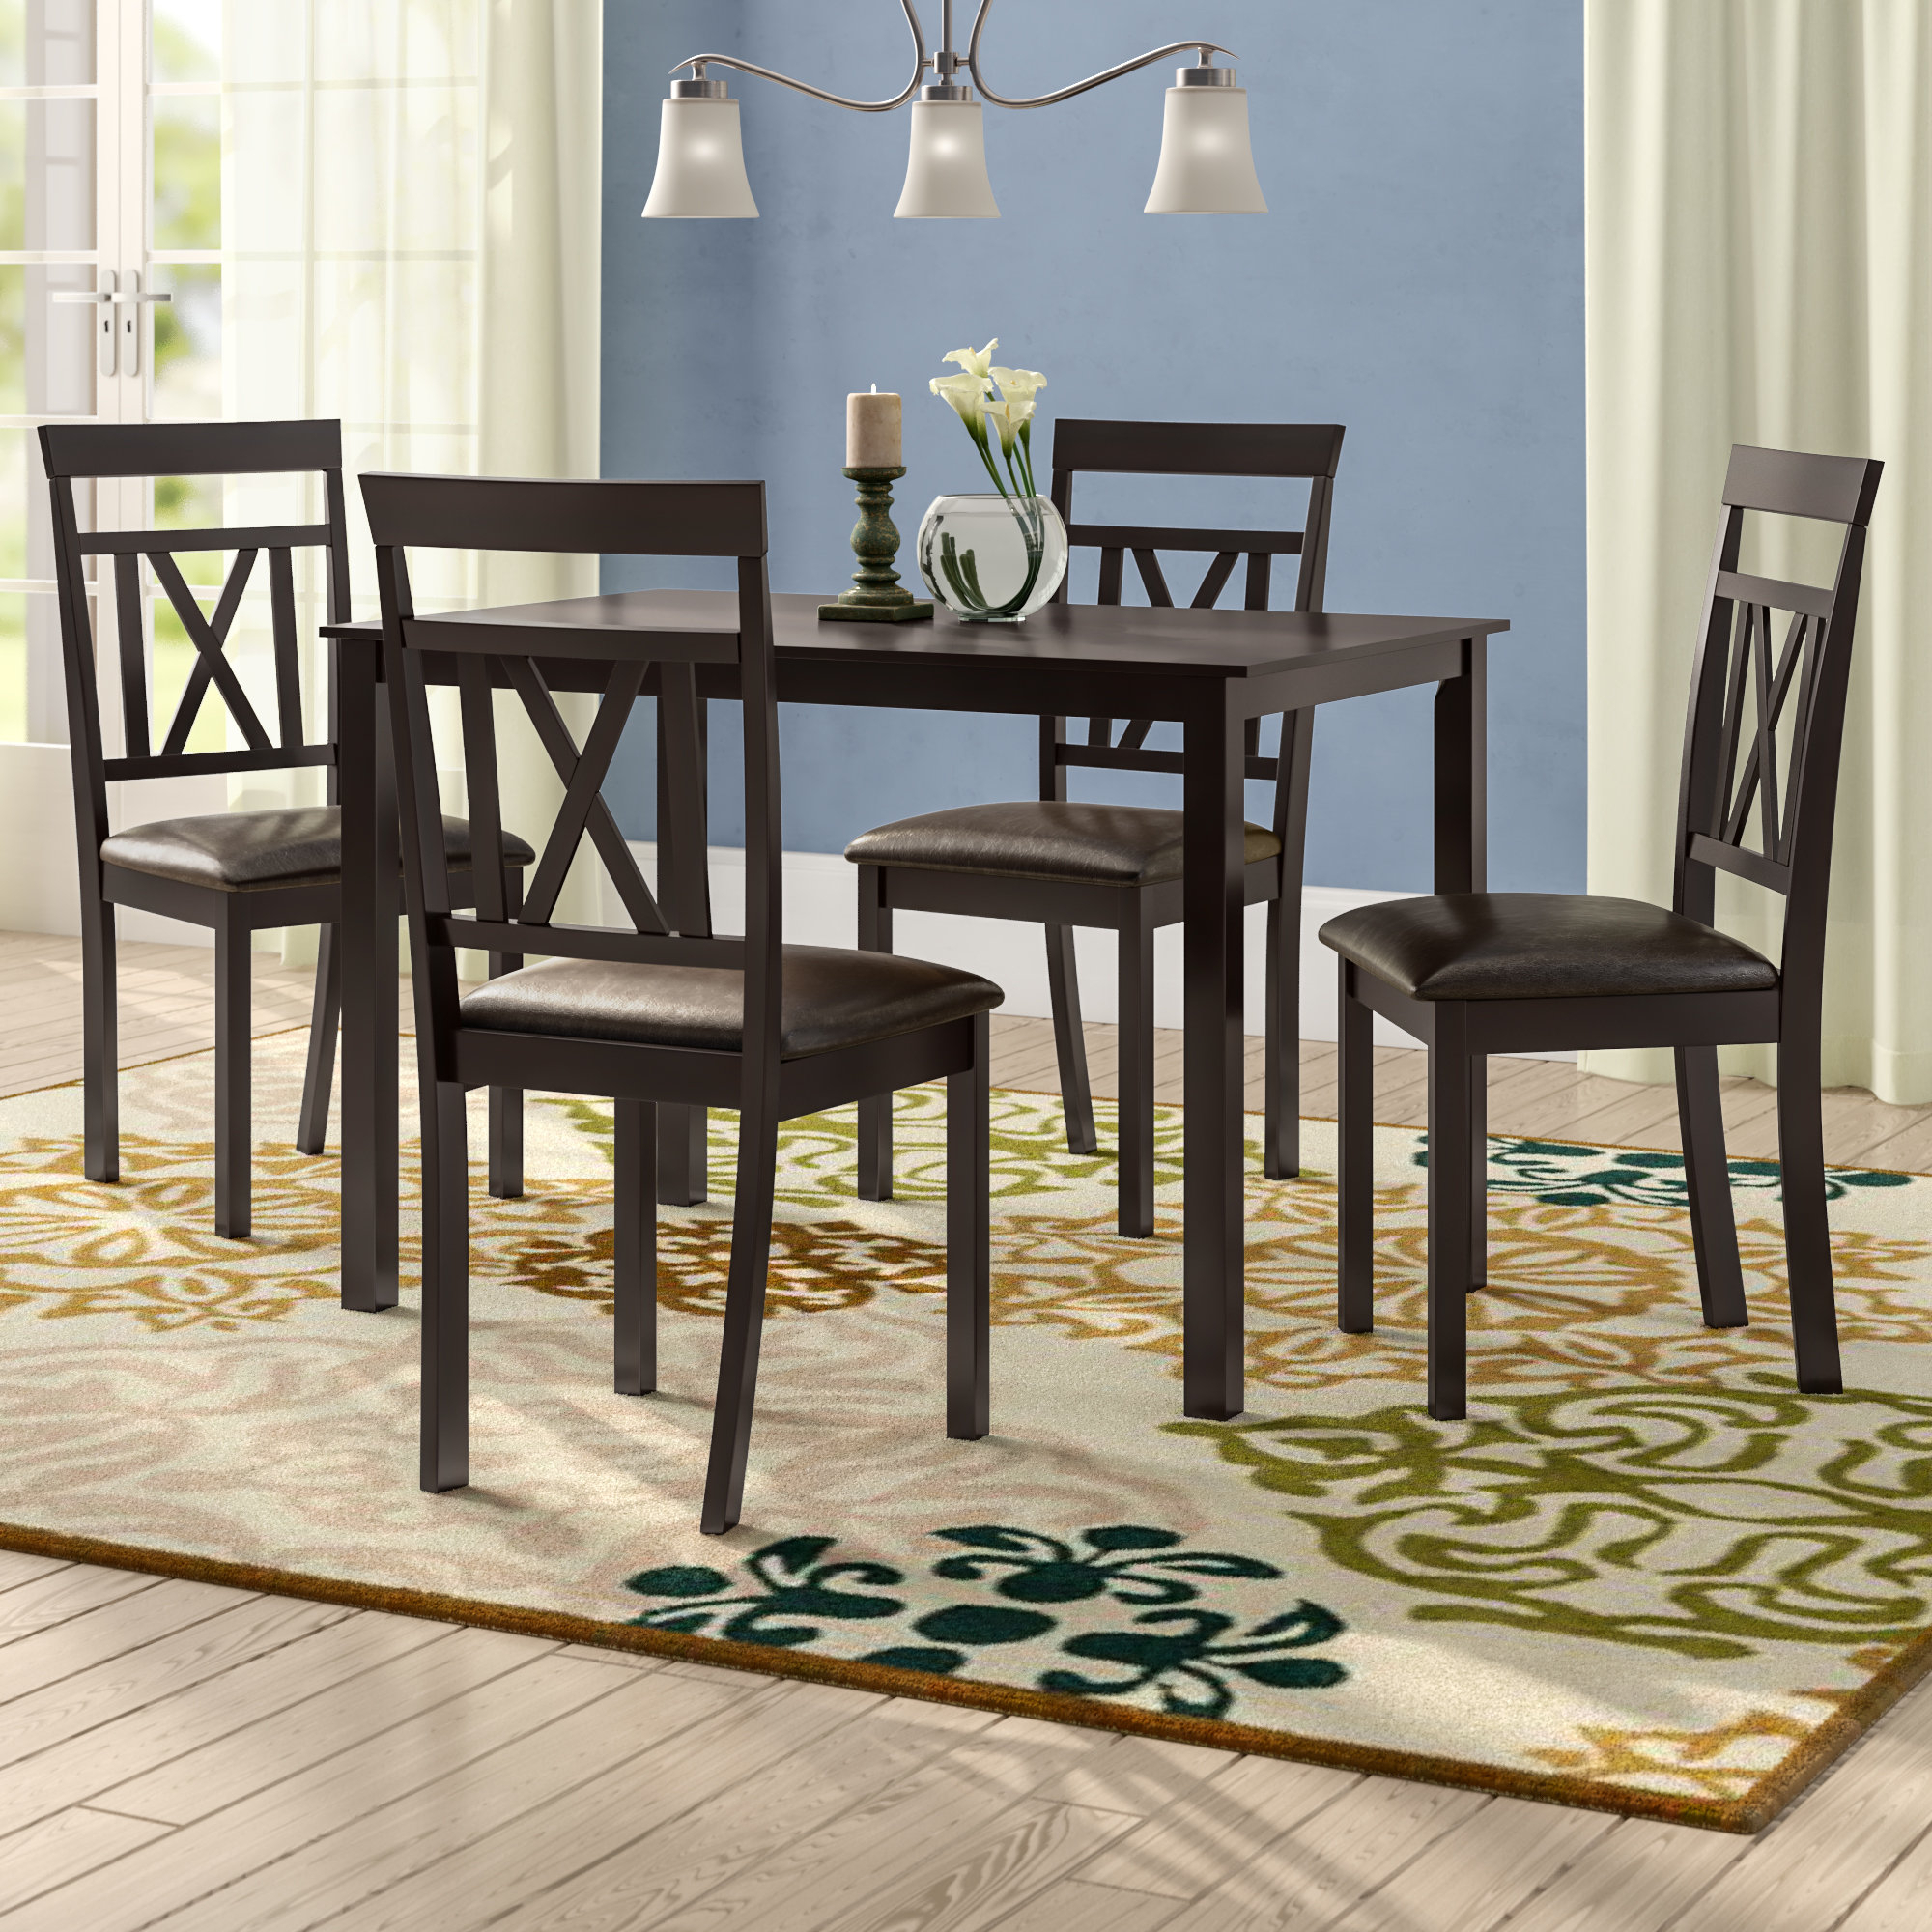 Whitbey Modern And Contemporary 5 Piece Breakfast Nook Dining Set Within Recent 5 Piece Breakfast Nook Dining Sets (View 4 of 20)